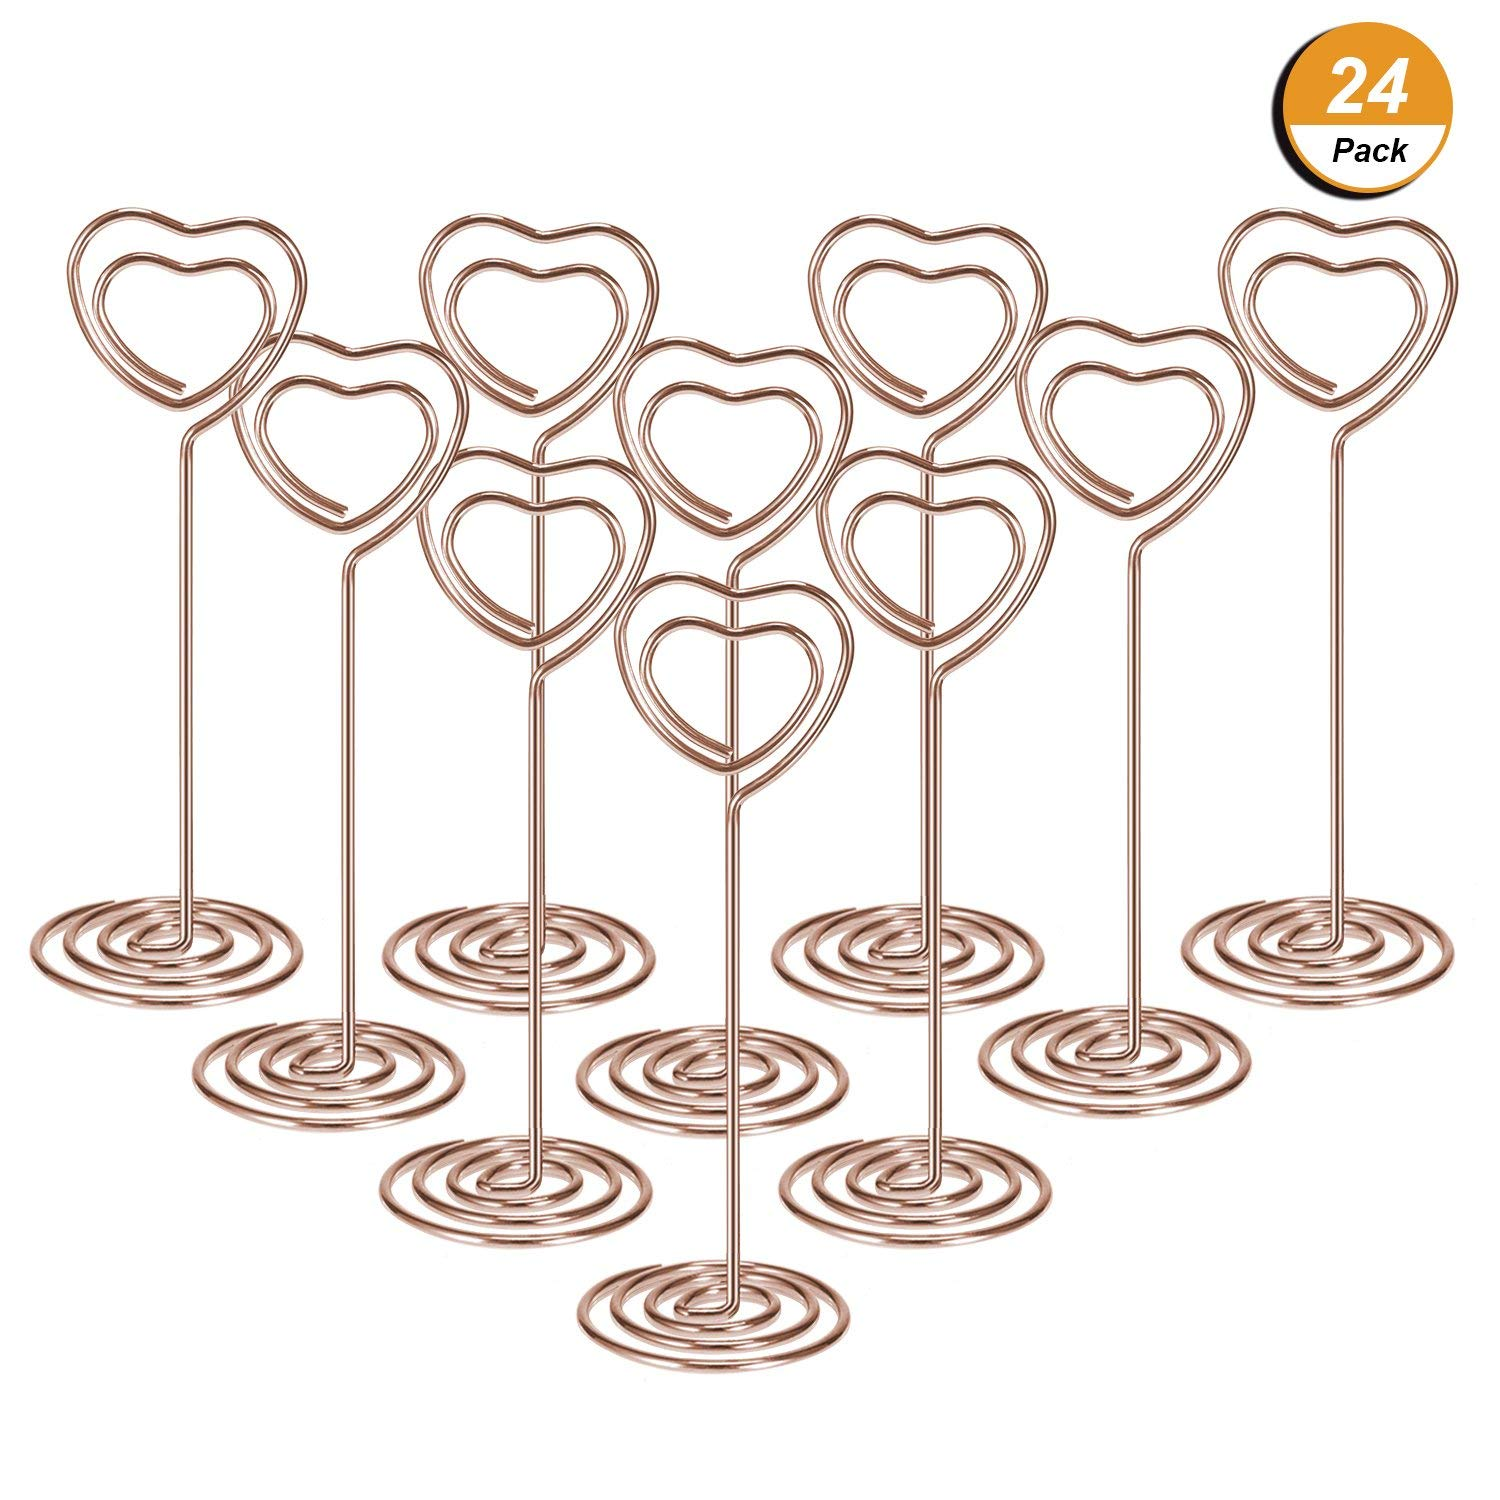 24 Pack Of Table Number Card Holders Photo Holder Stand Place Card Paper Menu Clips Holders, Heart Shape (Rose Gold)